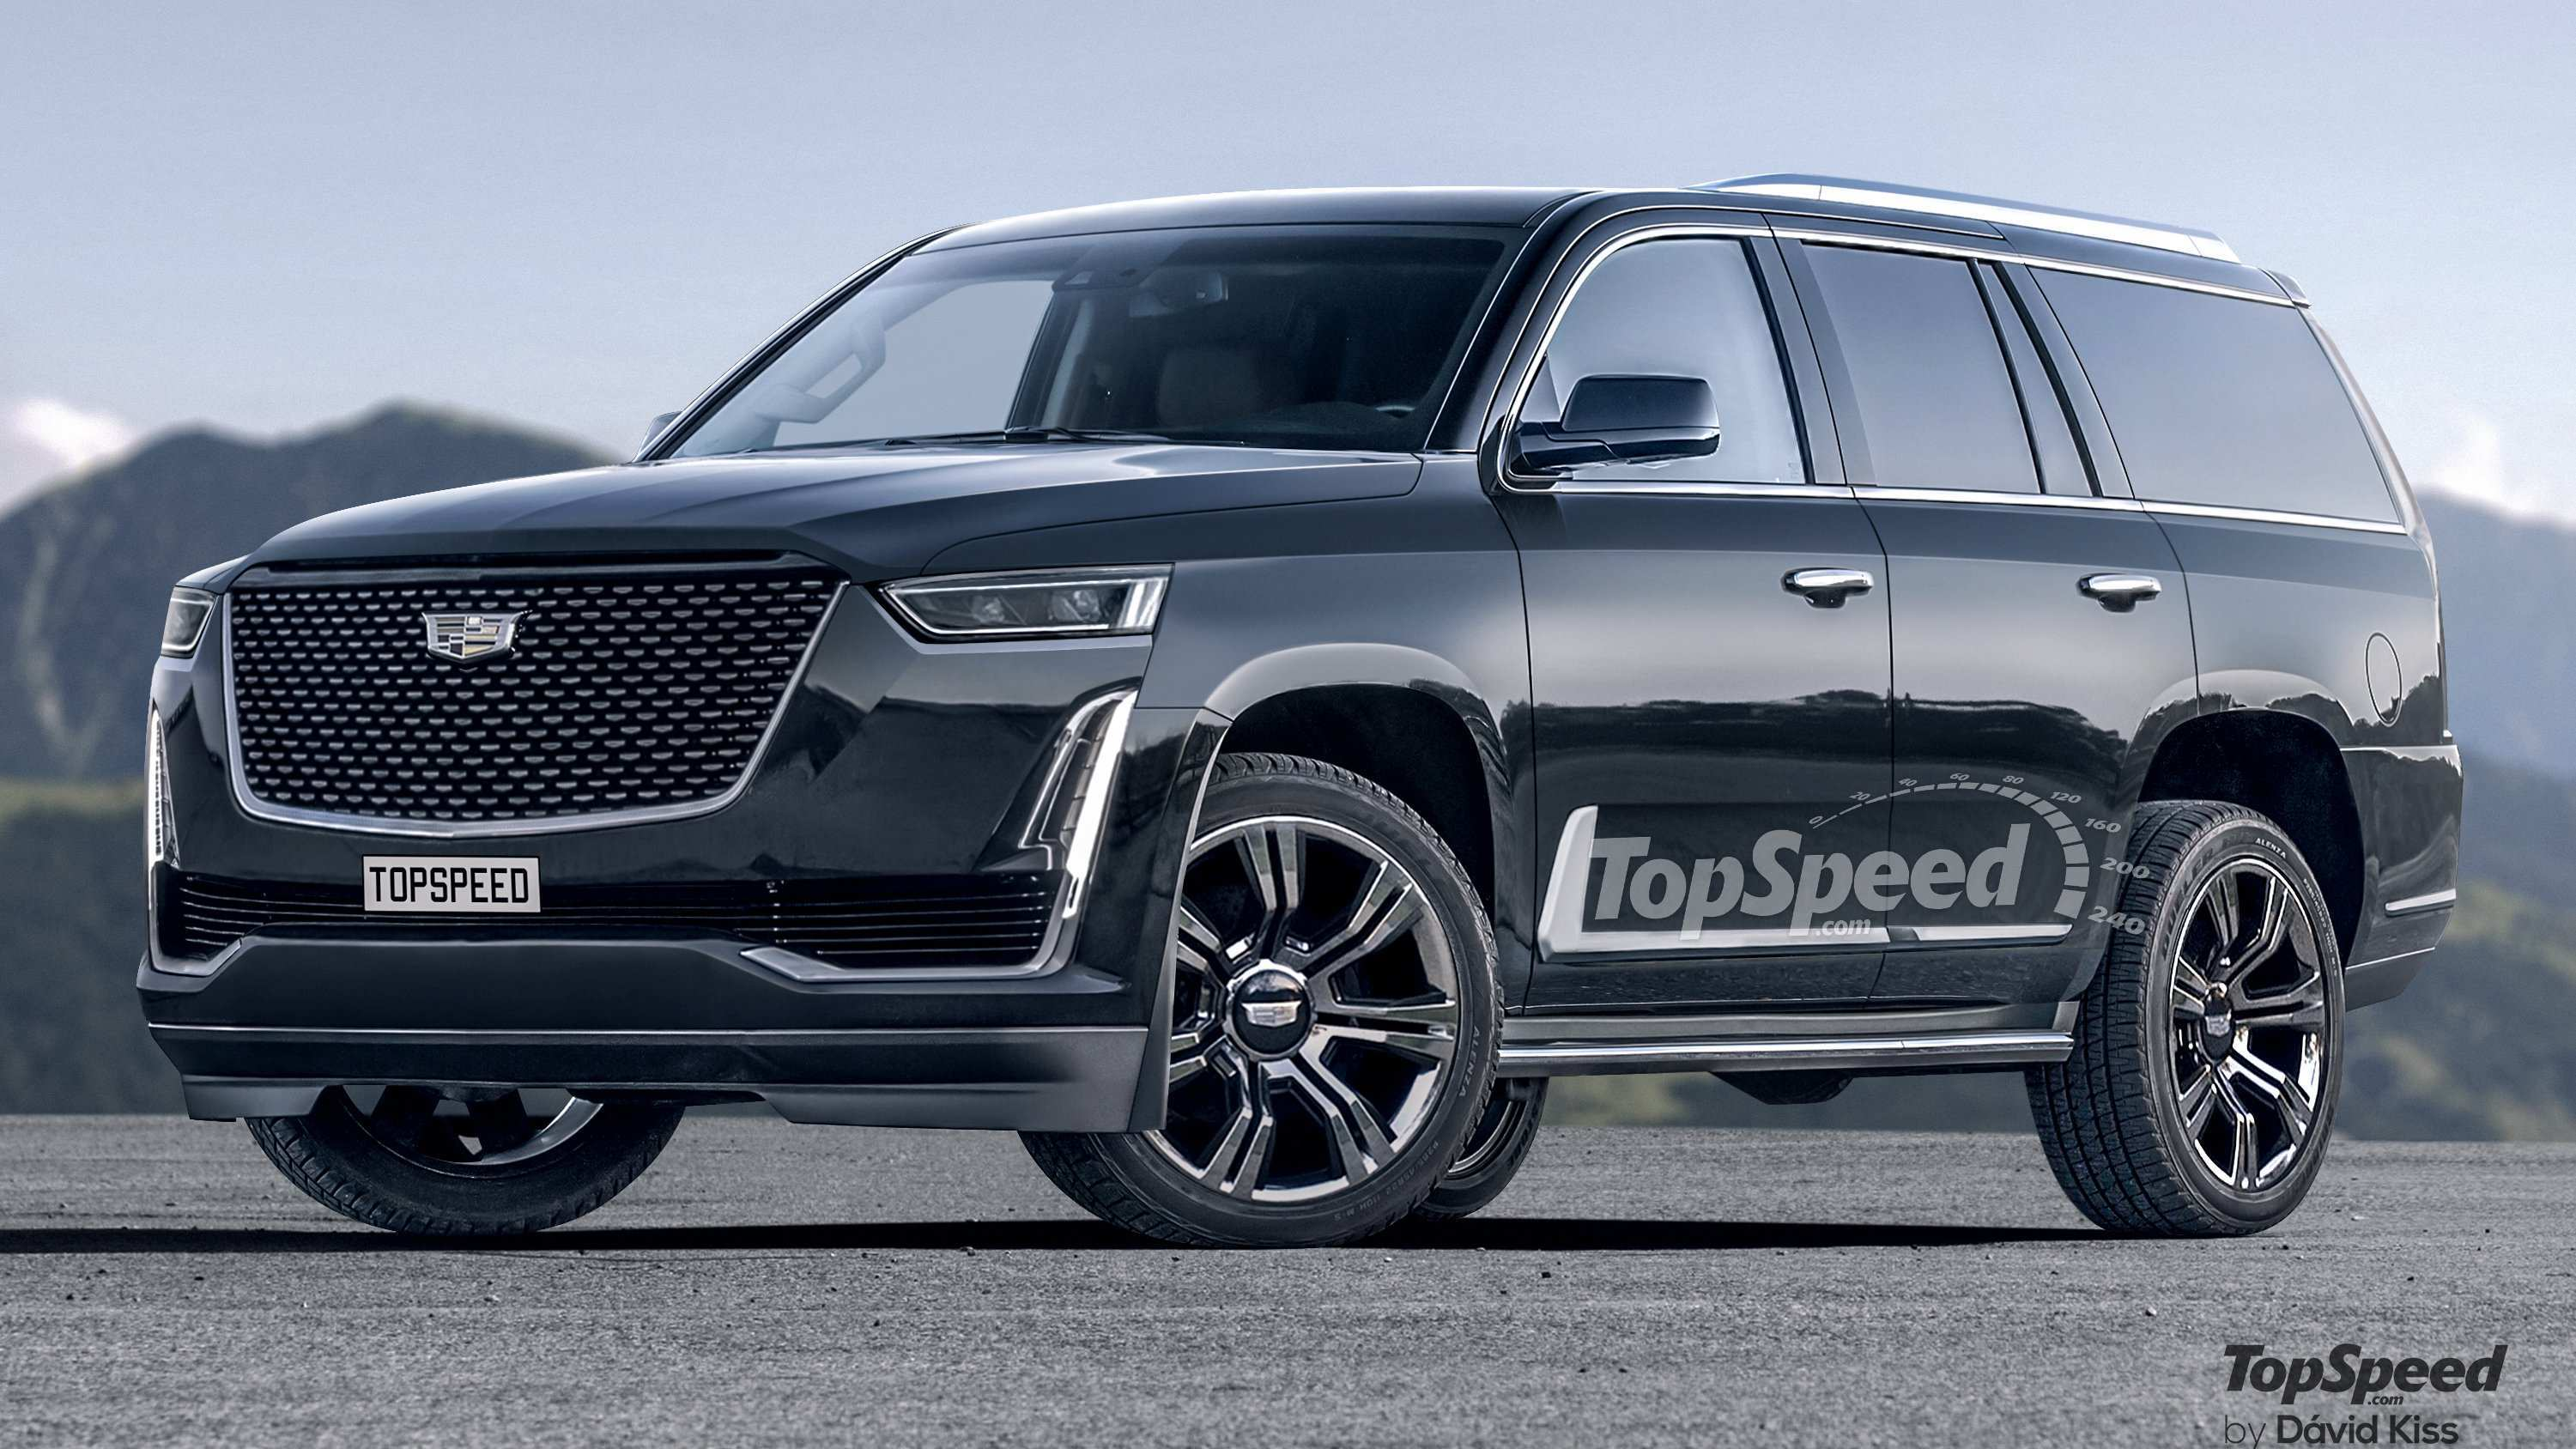 36 Best Review Cadillac Pickup 2020 Price and Review for Cadillac Pickup 2020